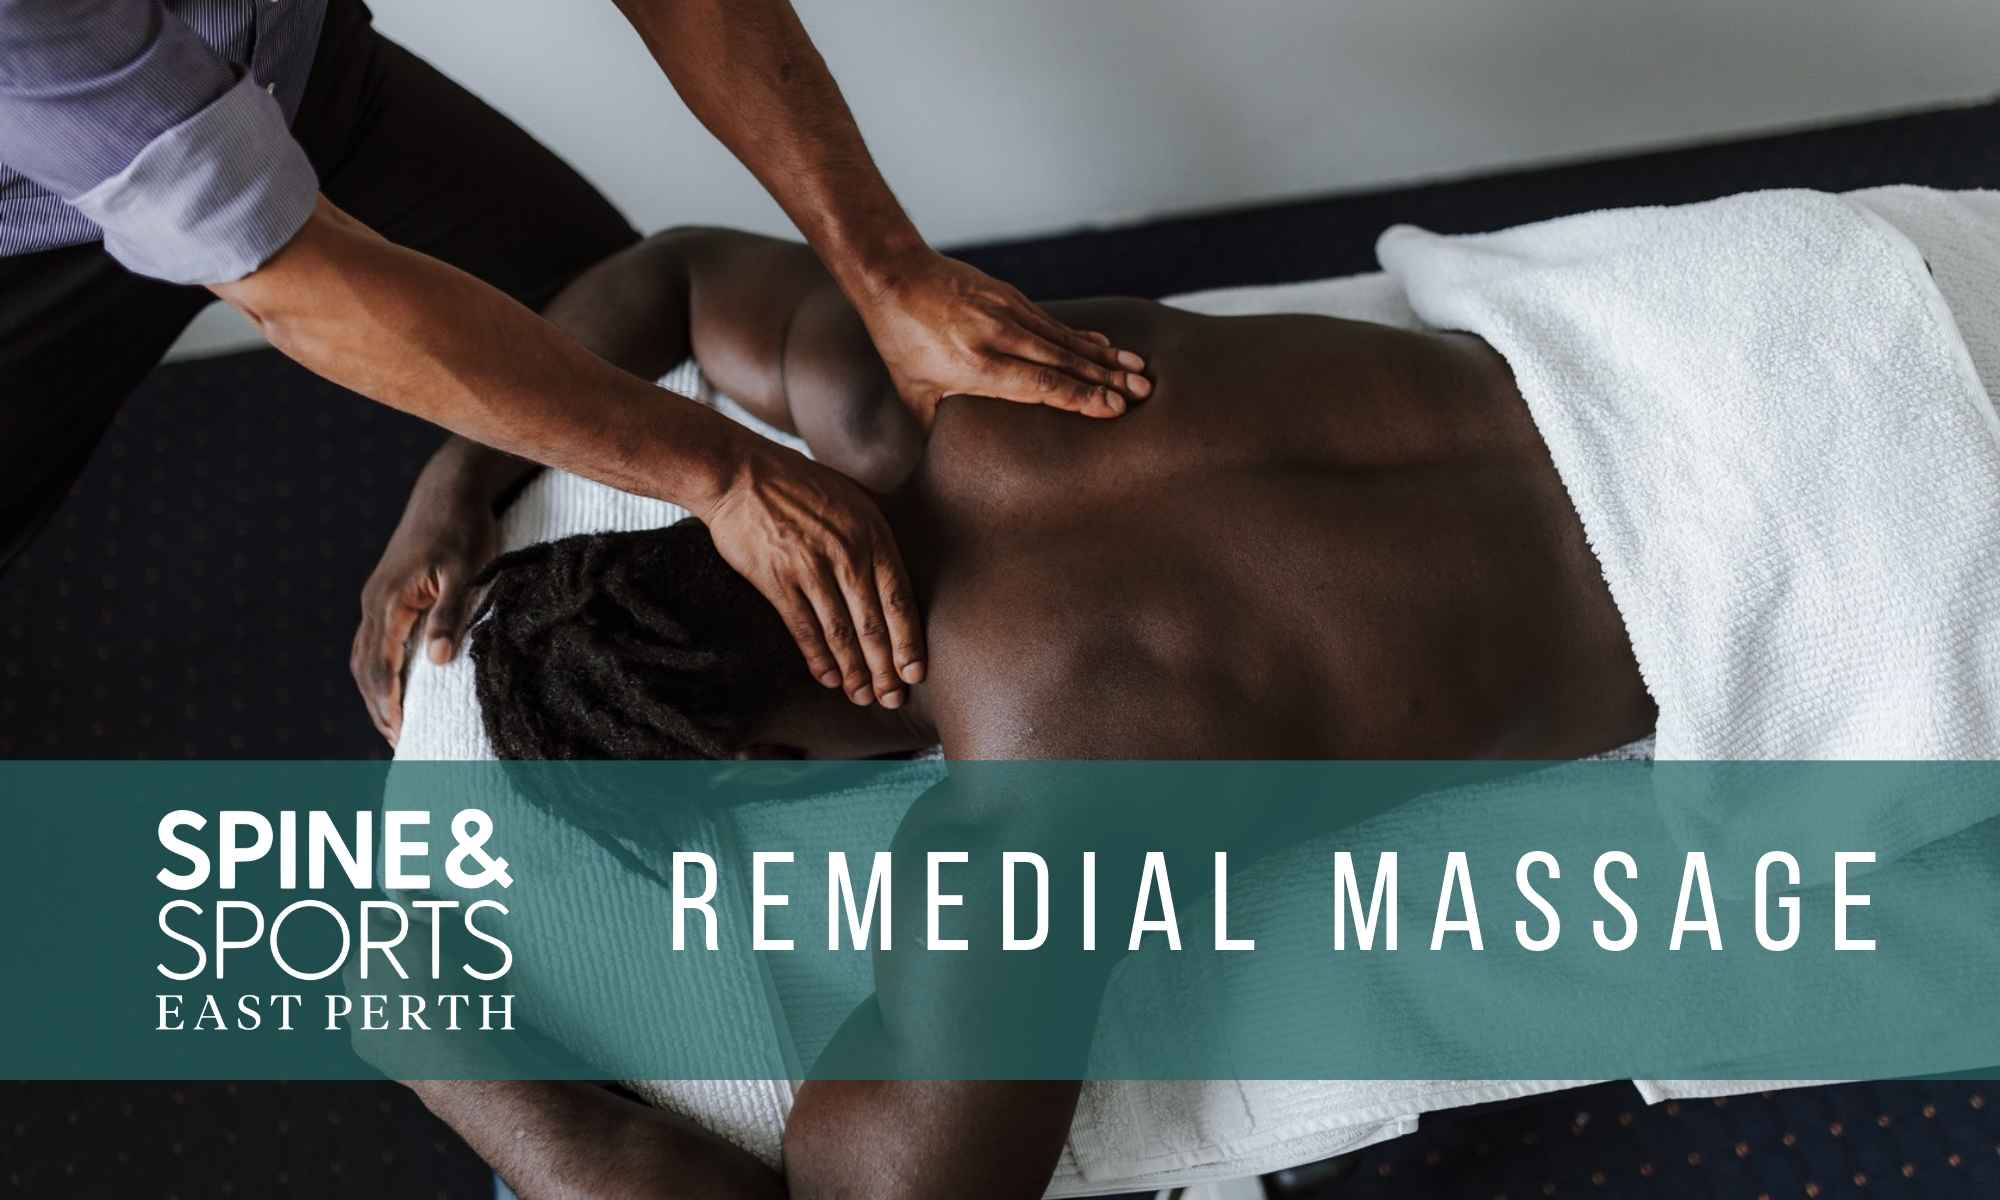 East Perth Remedial Massage at Spine & Sports Centre.jpg